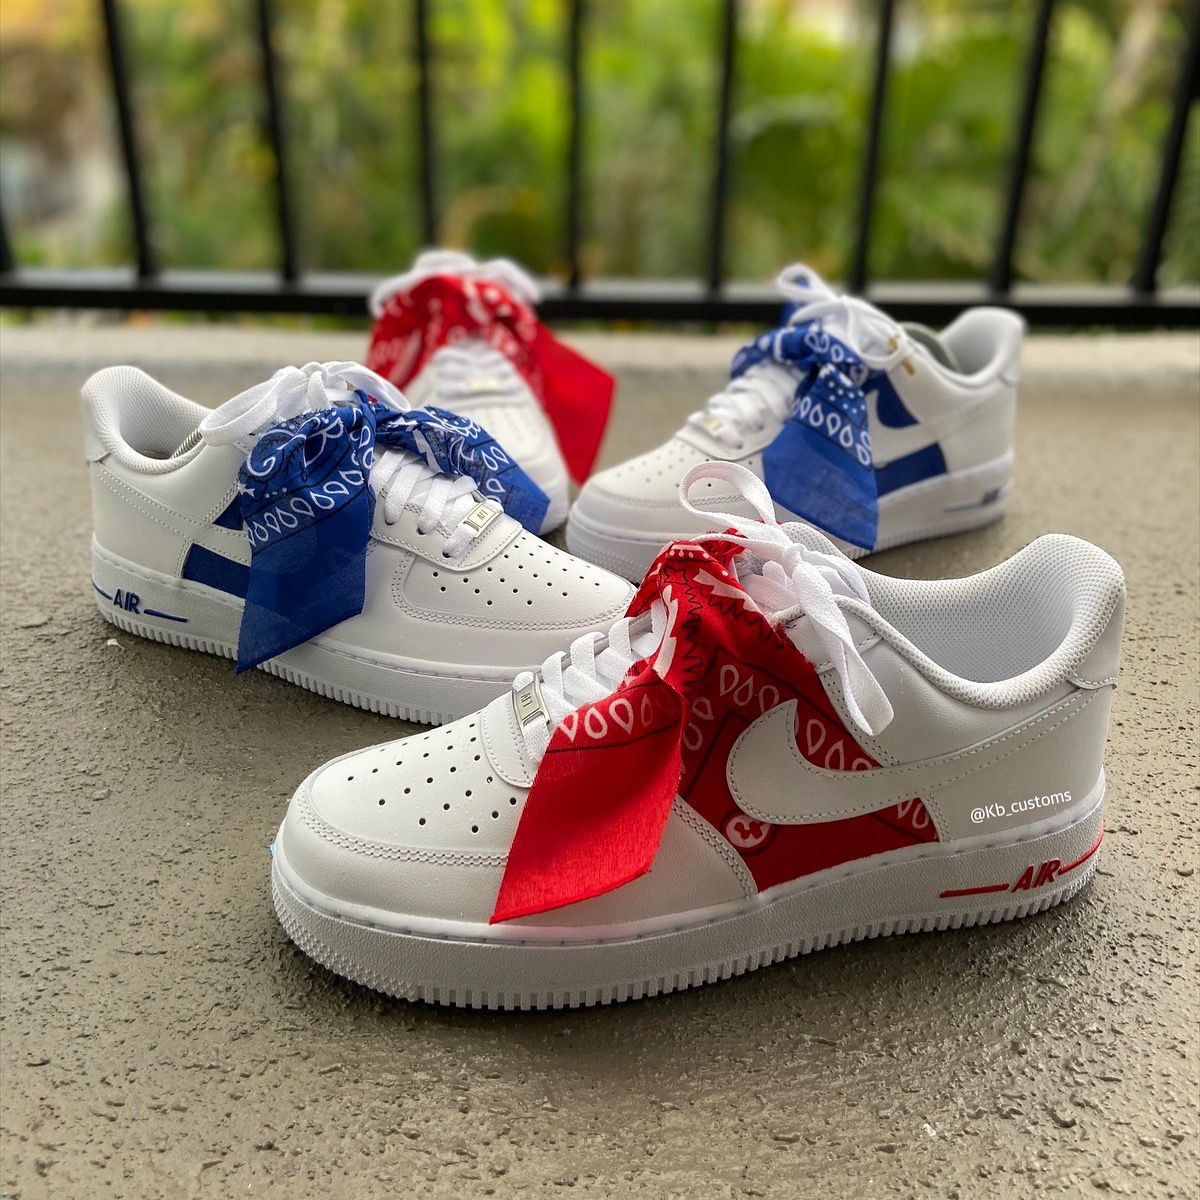 Custom Red Bandana Air Force 1s in 2020 Red bandana